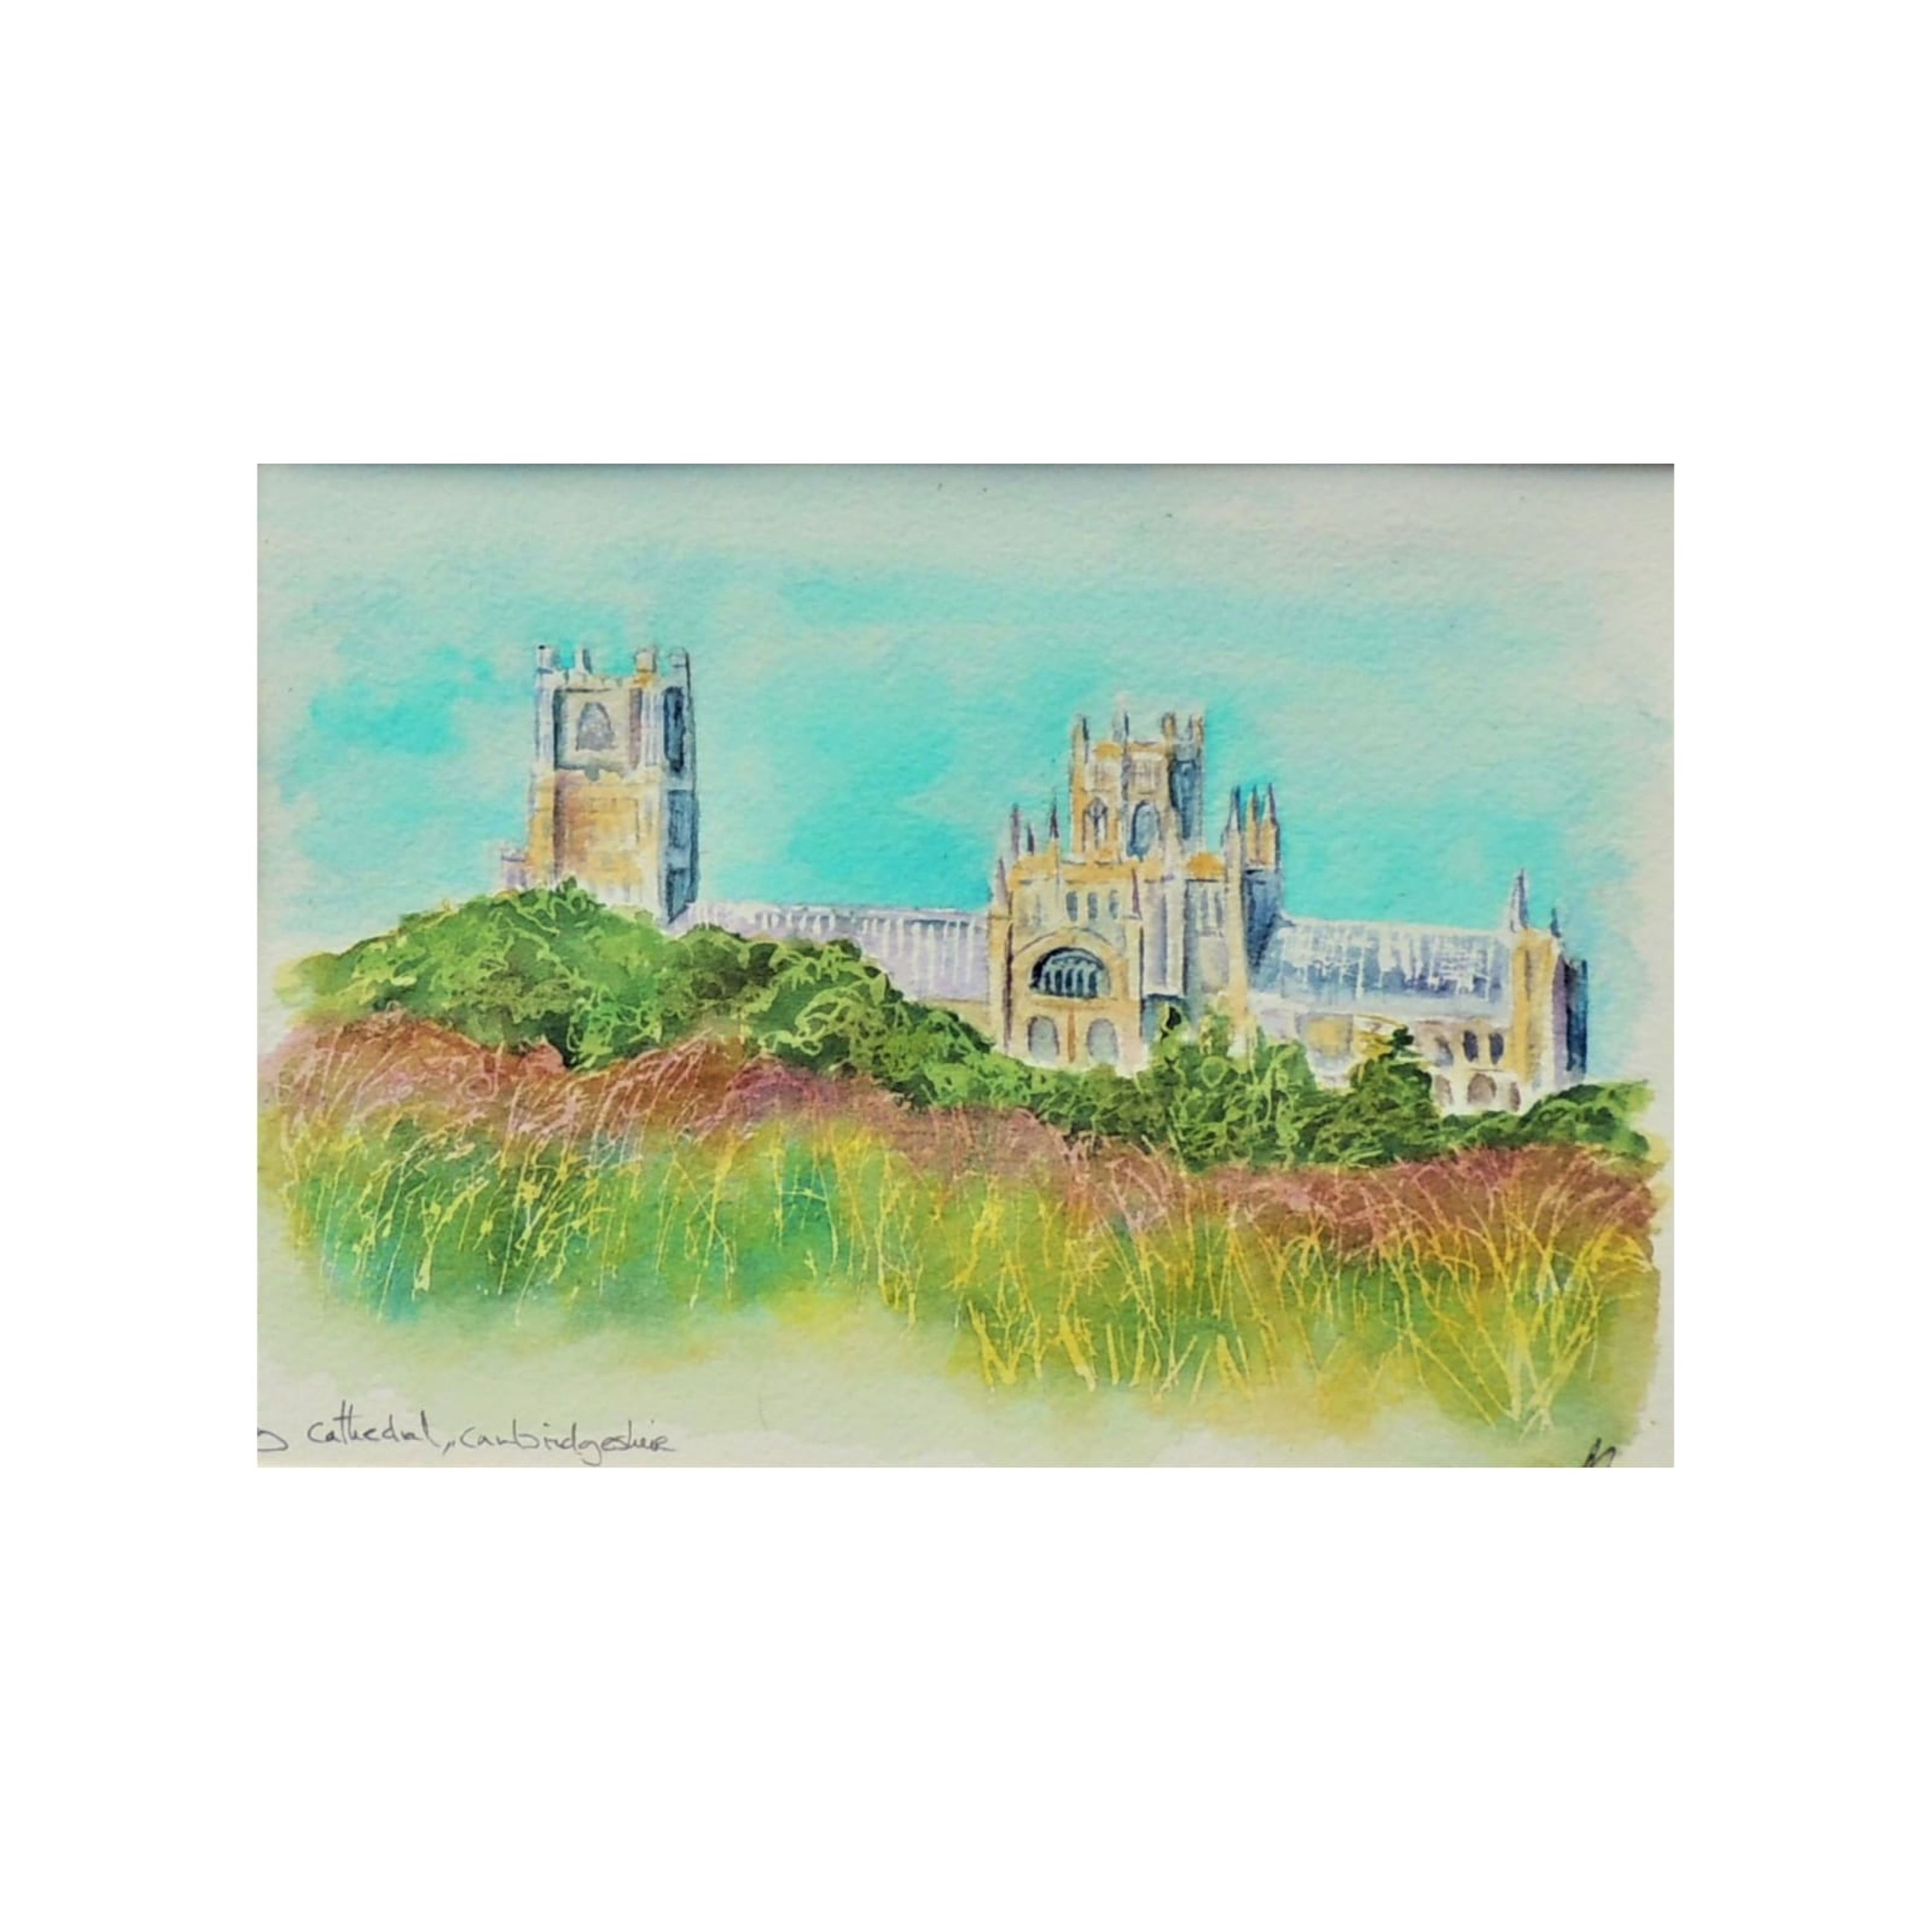 Ely Cathedral,Ely, Cambridge